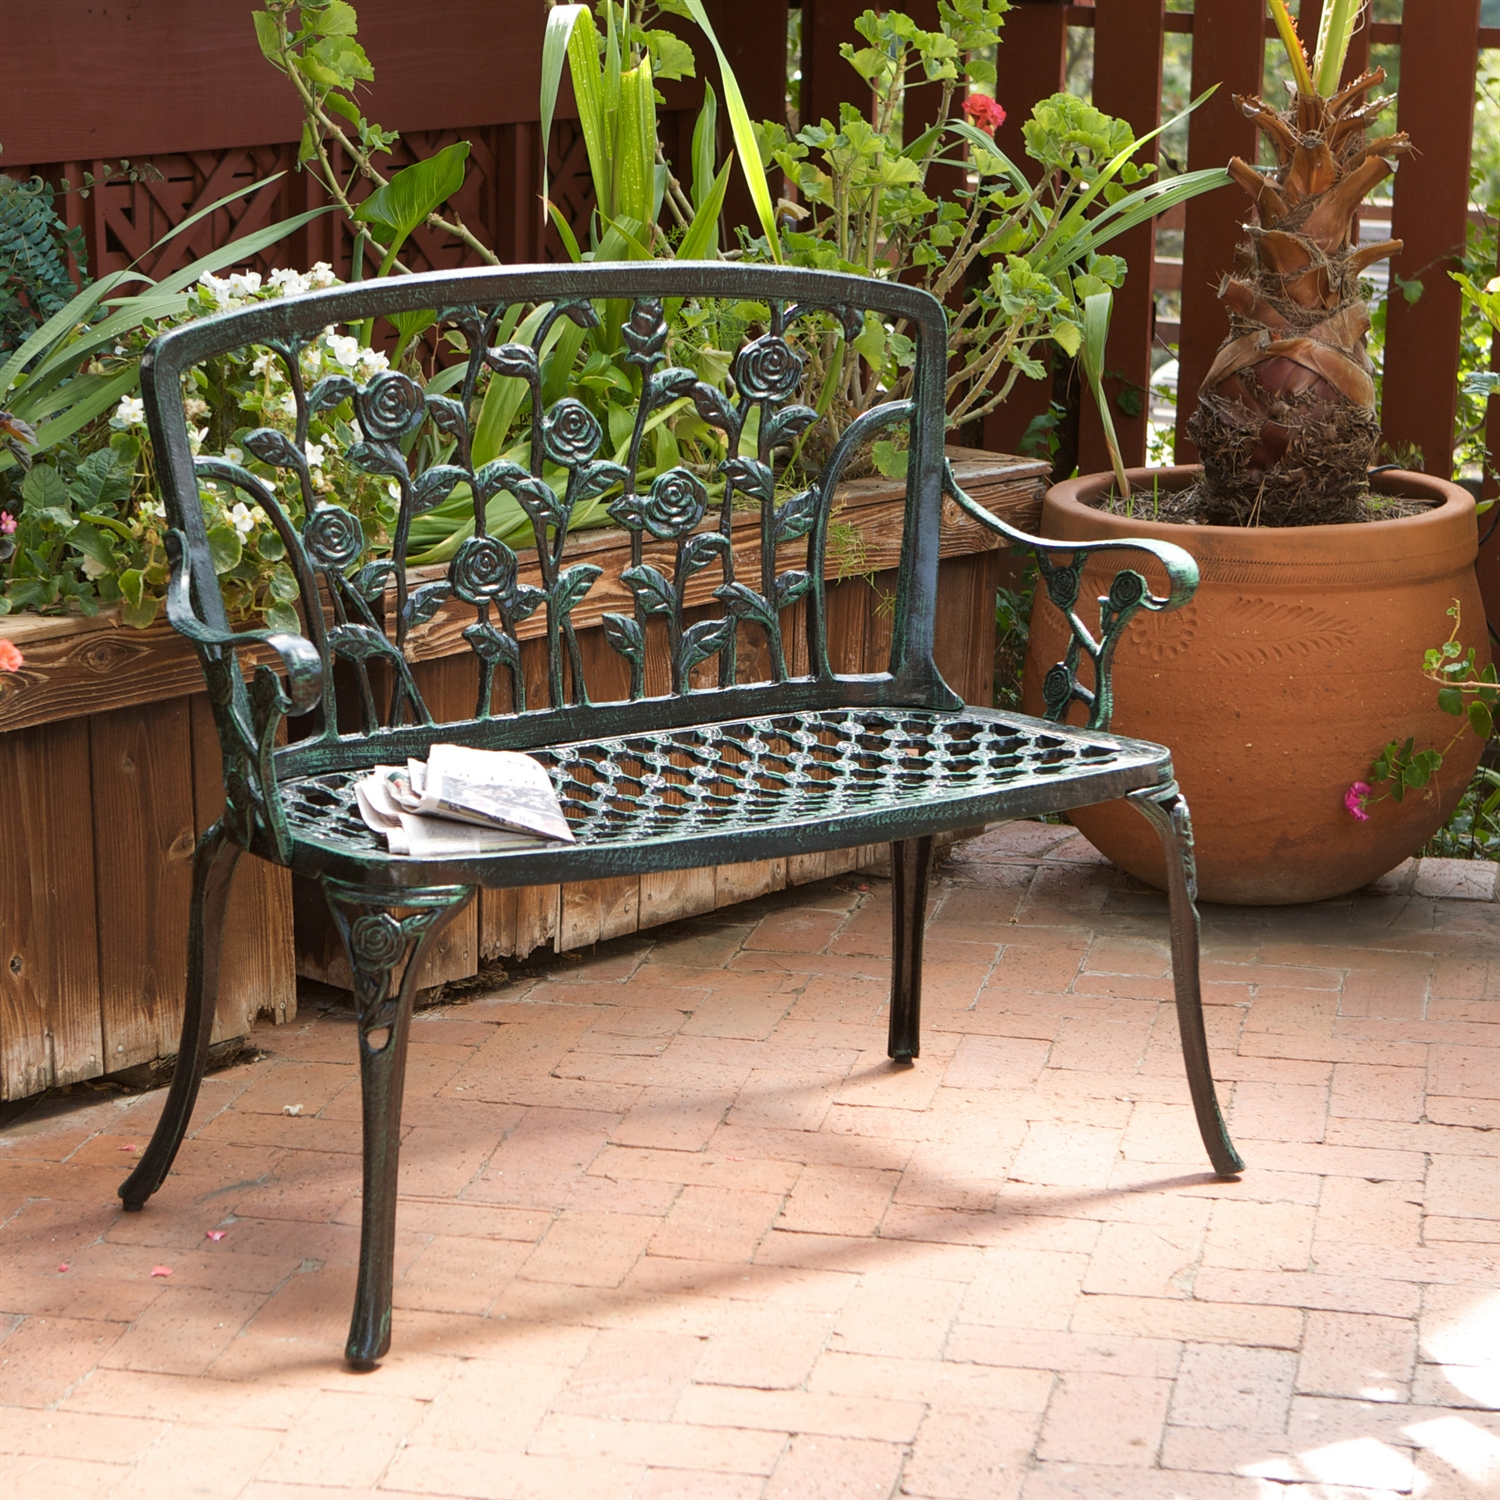 Cast Aluminum Outdoor Rose Metal Garden Bench in Green Finish, CAB153105 :  This Cast Aluminum Outdoor Rose Metal Garden Bench in Green Finish would be a great addition to your home. It has a green finish and is made of cast aluminum. Perfect chair for a garden; Elegant and stylish grid patterned; Seat allows rainwater to easily drop away; Legs feature incredibly detailed roses; Rubber feet add stability and protection; Sculpted roses are incredibly smooth; Provides comfort and support; Unique, inward-sloped seat; Construction material: Aluminum. Assembly Required: Yes; Tools Needed for Assembly: Spanner/Screwdriver; Style: Traditional; Additional Parts Required: No; Powder Coated Finish: Yes; Gloss Finish: Yes; Seat Material: Aluminum; Frame Material: Aluminum.